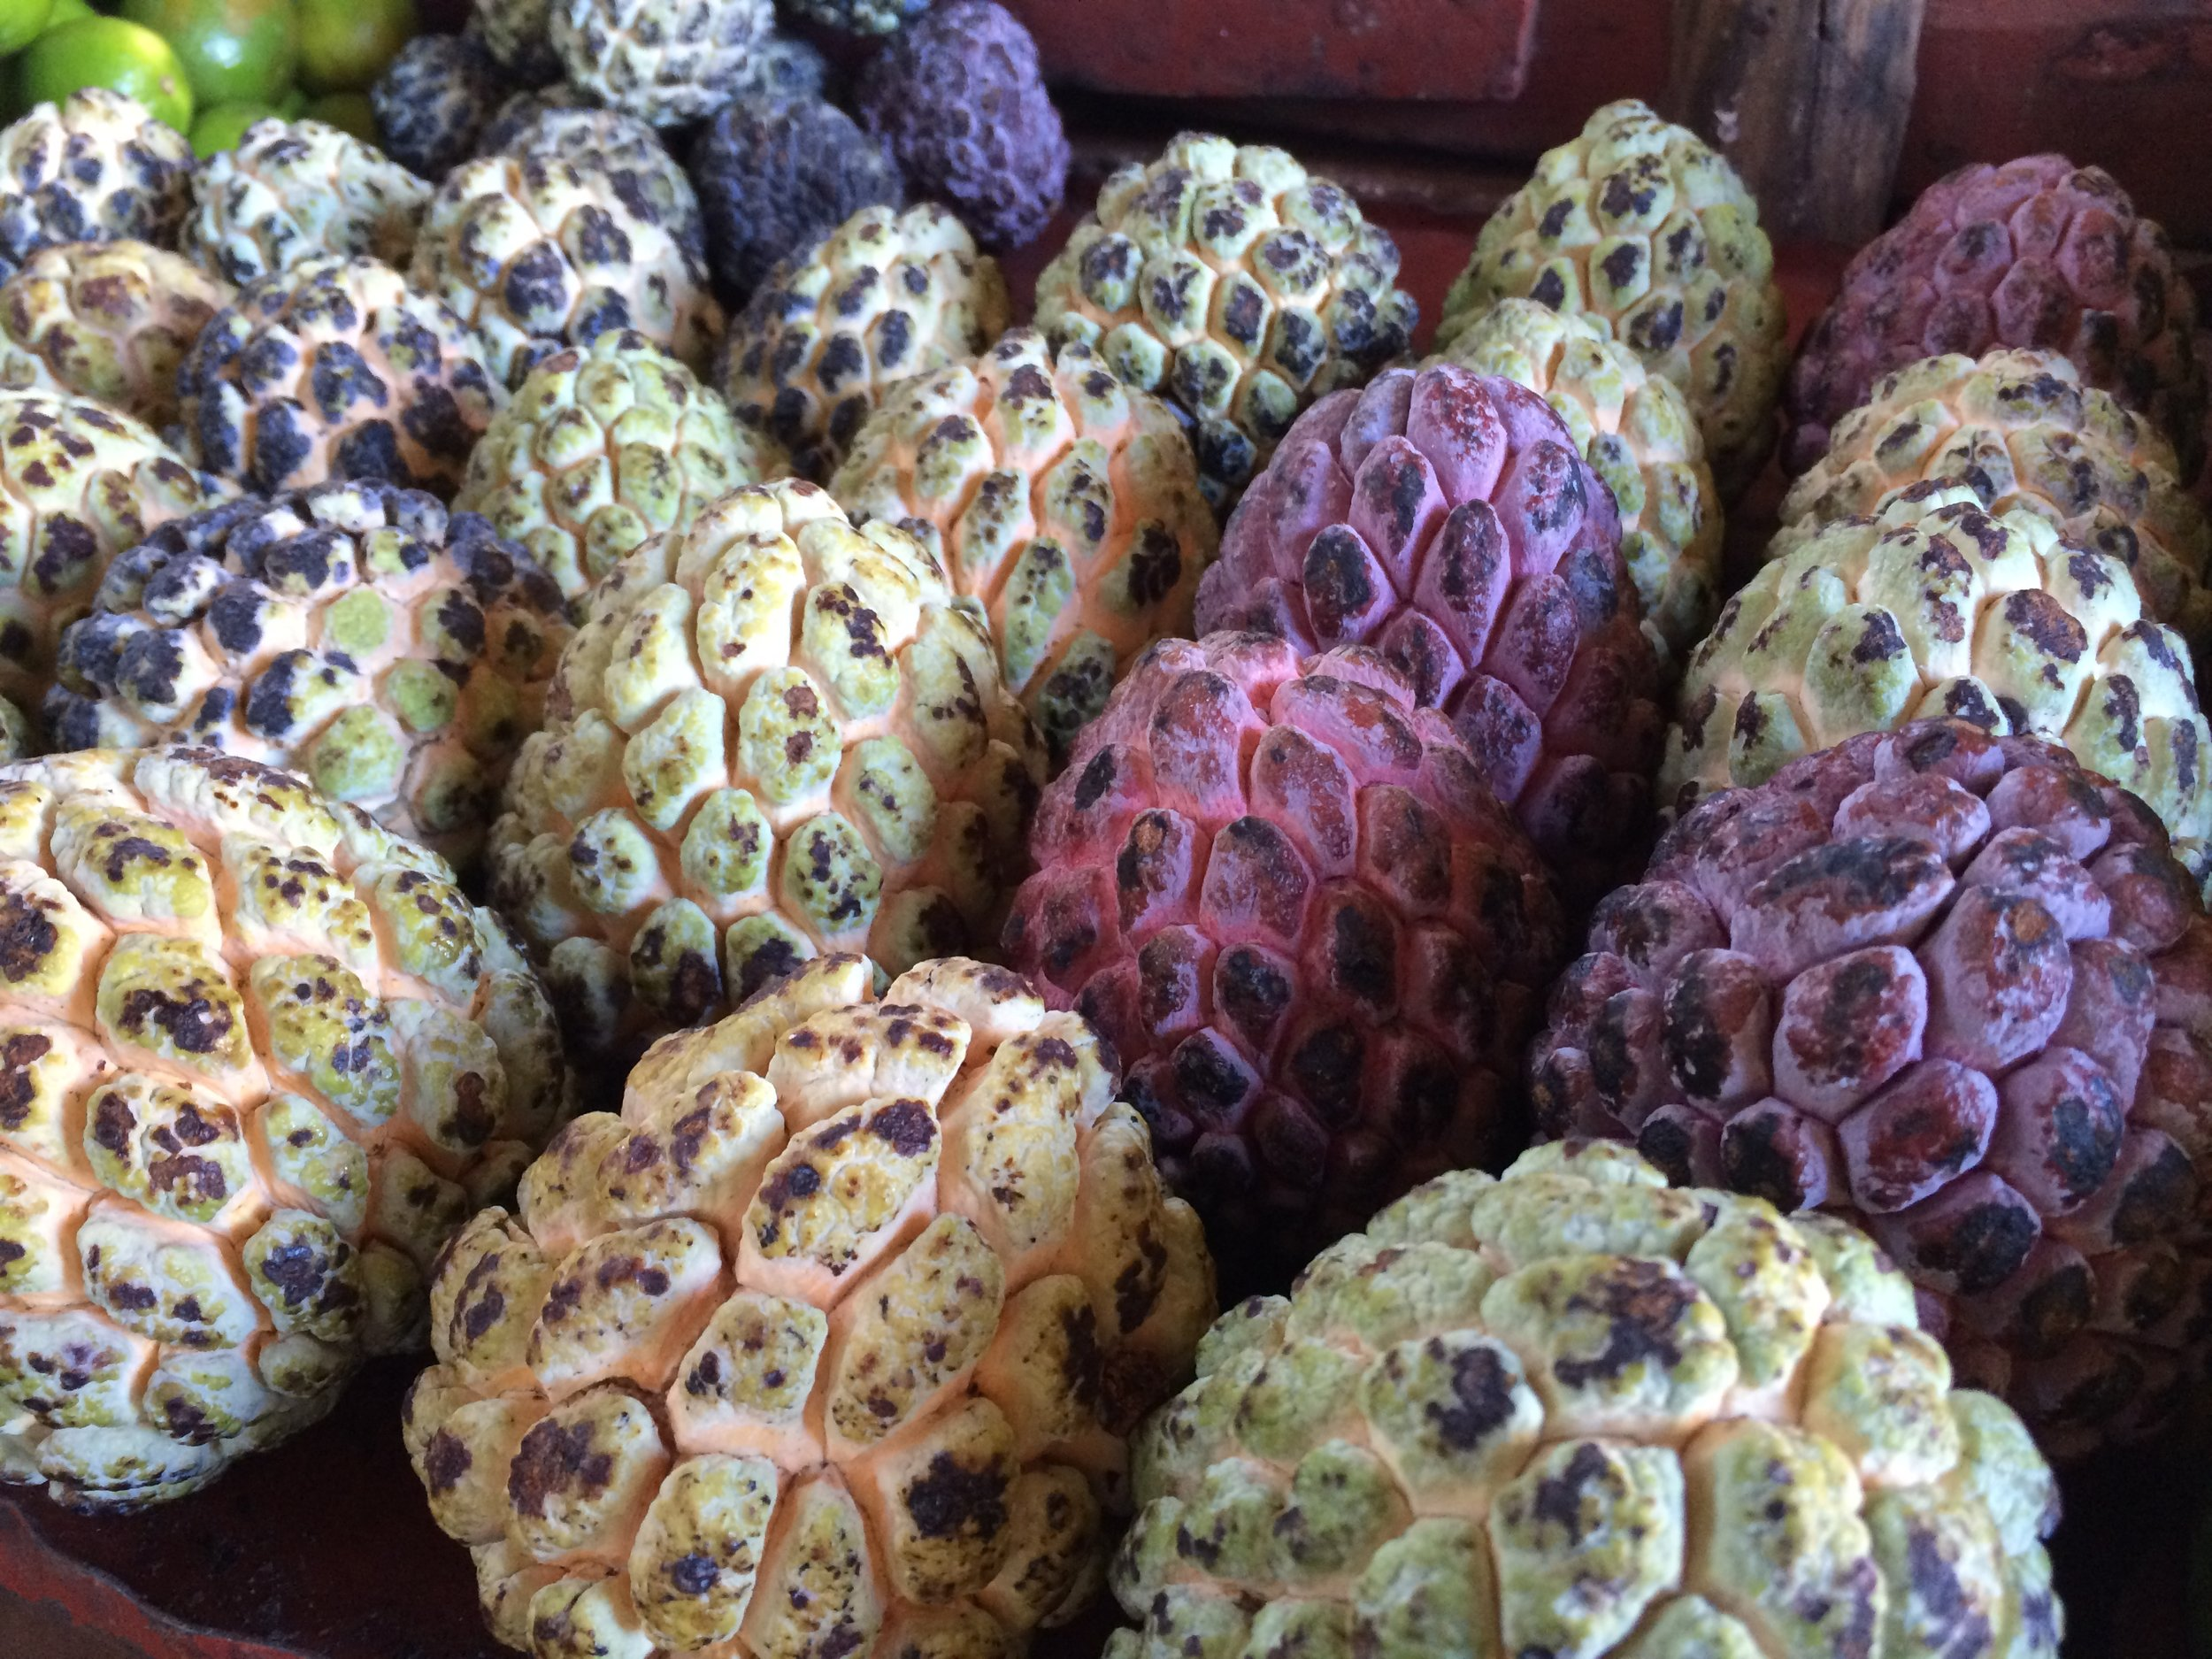 The anon, or sugar apple, is one of the exotic fruits that I've become acquainted with in Cuba.